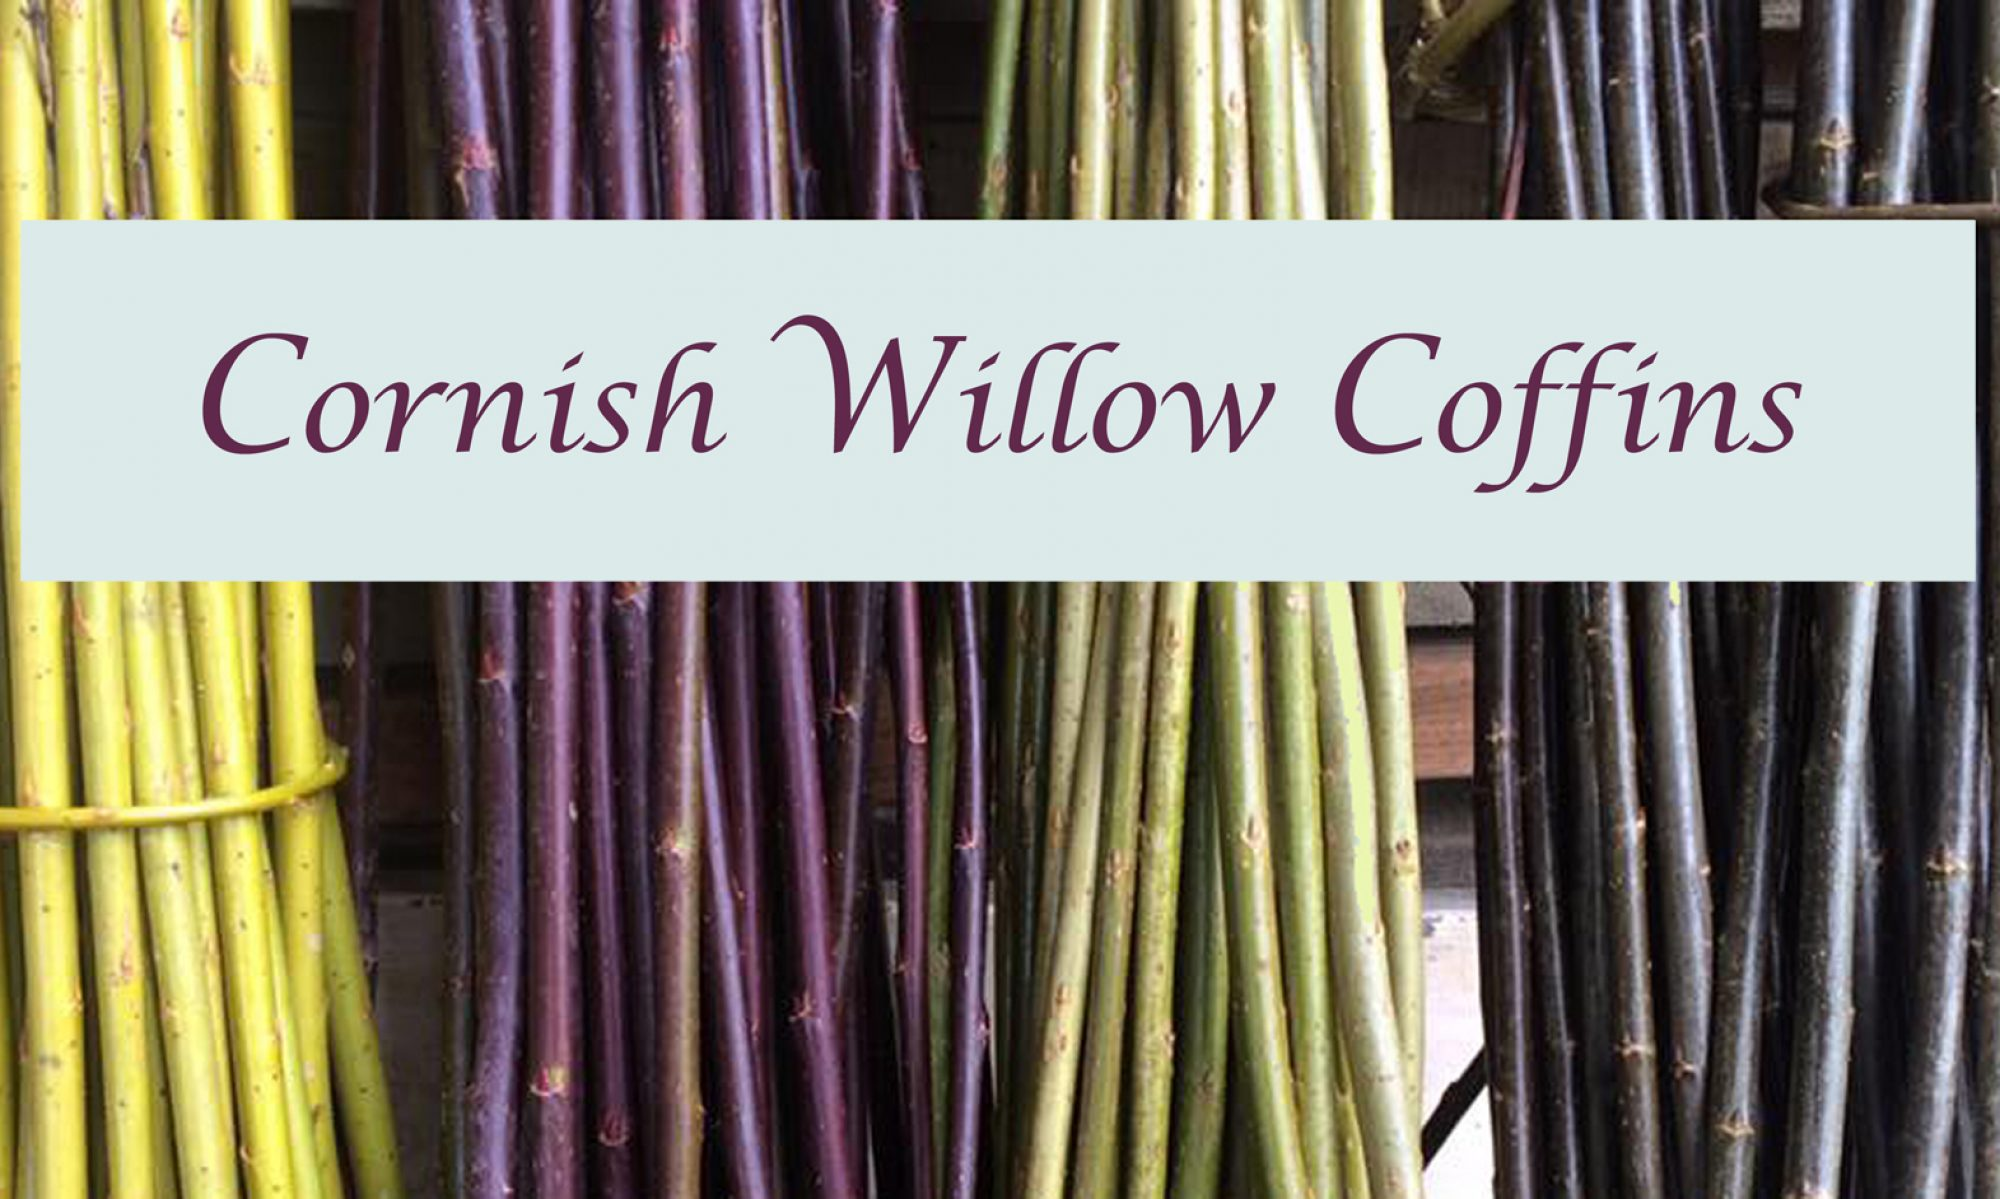 Cornish Willow Coffins